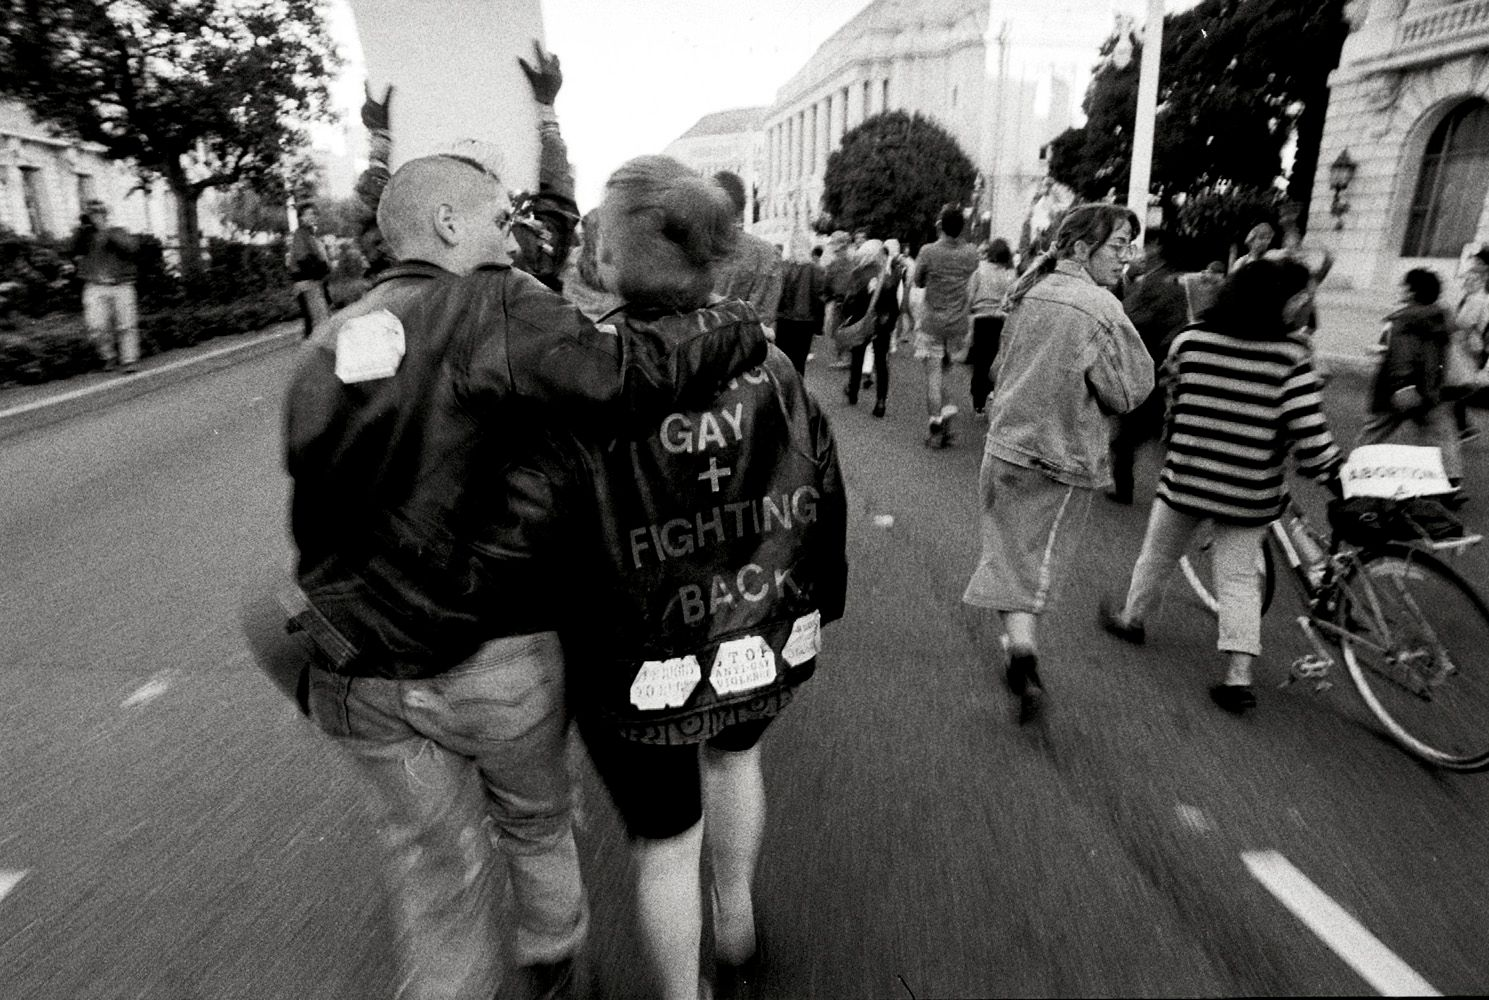 AbortionRightsRally1989.jpg